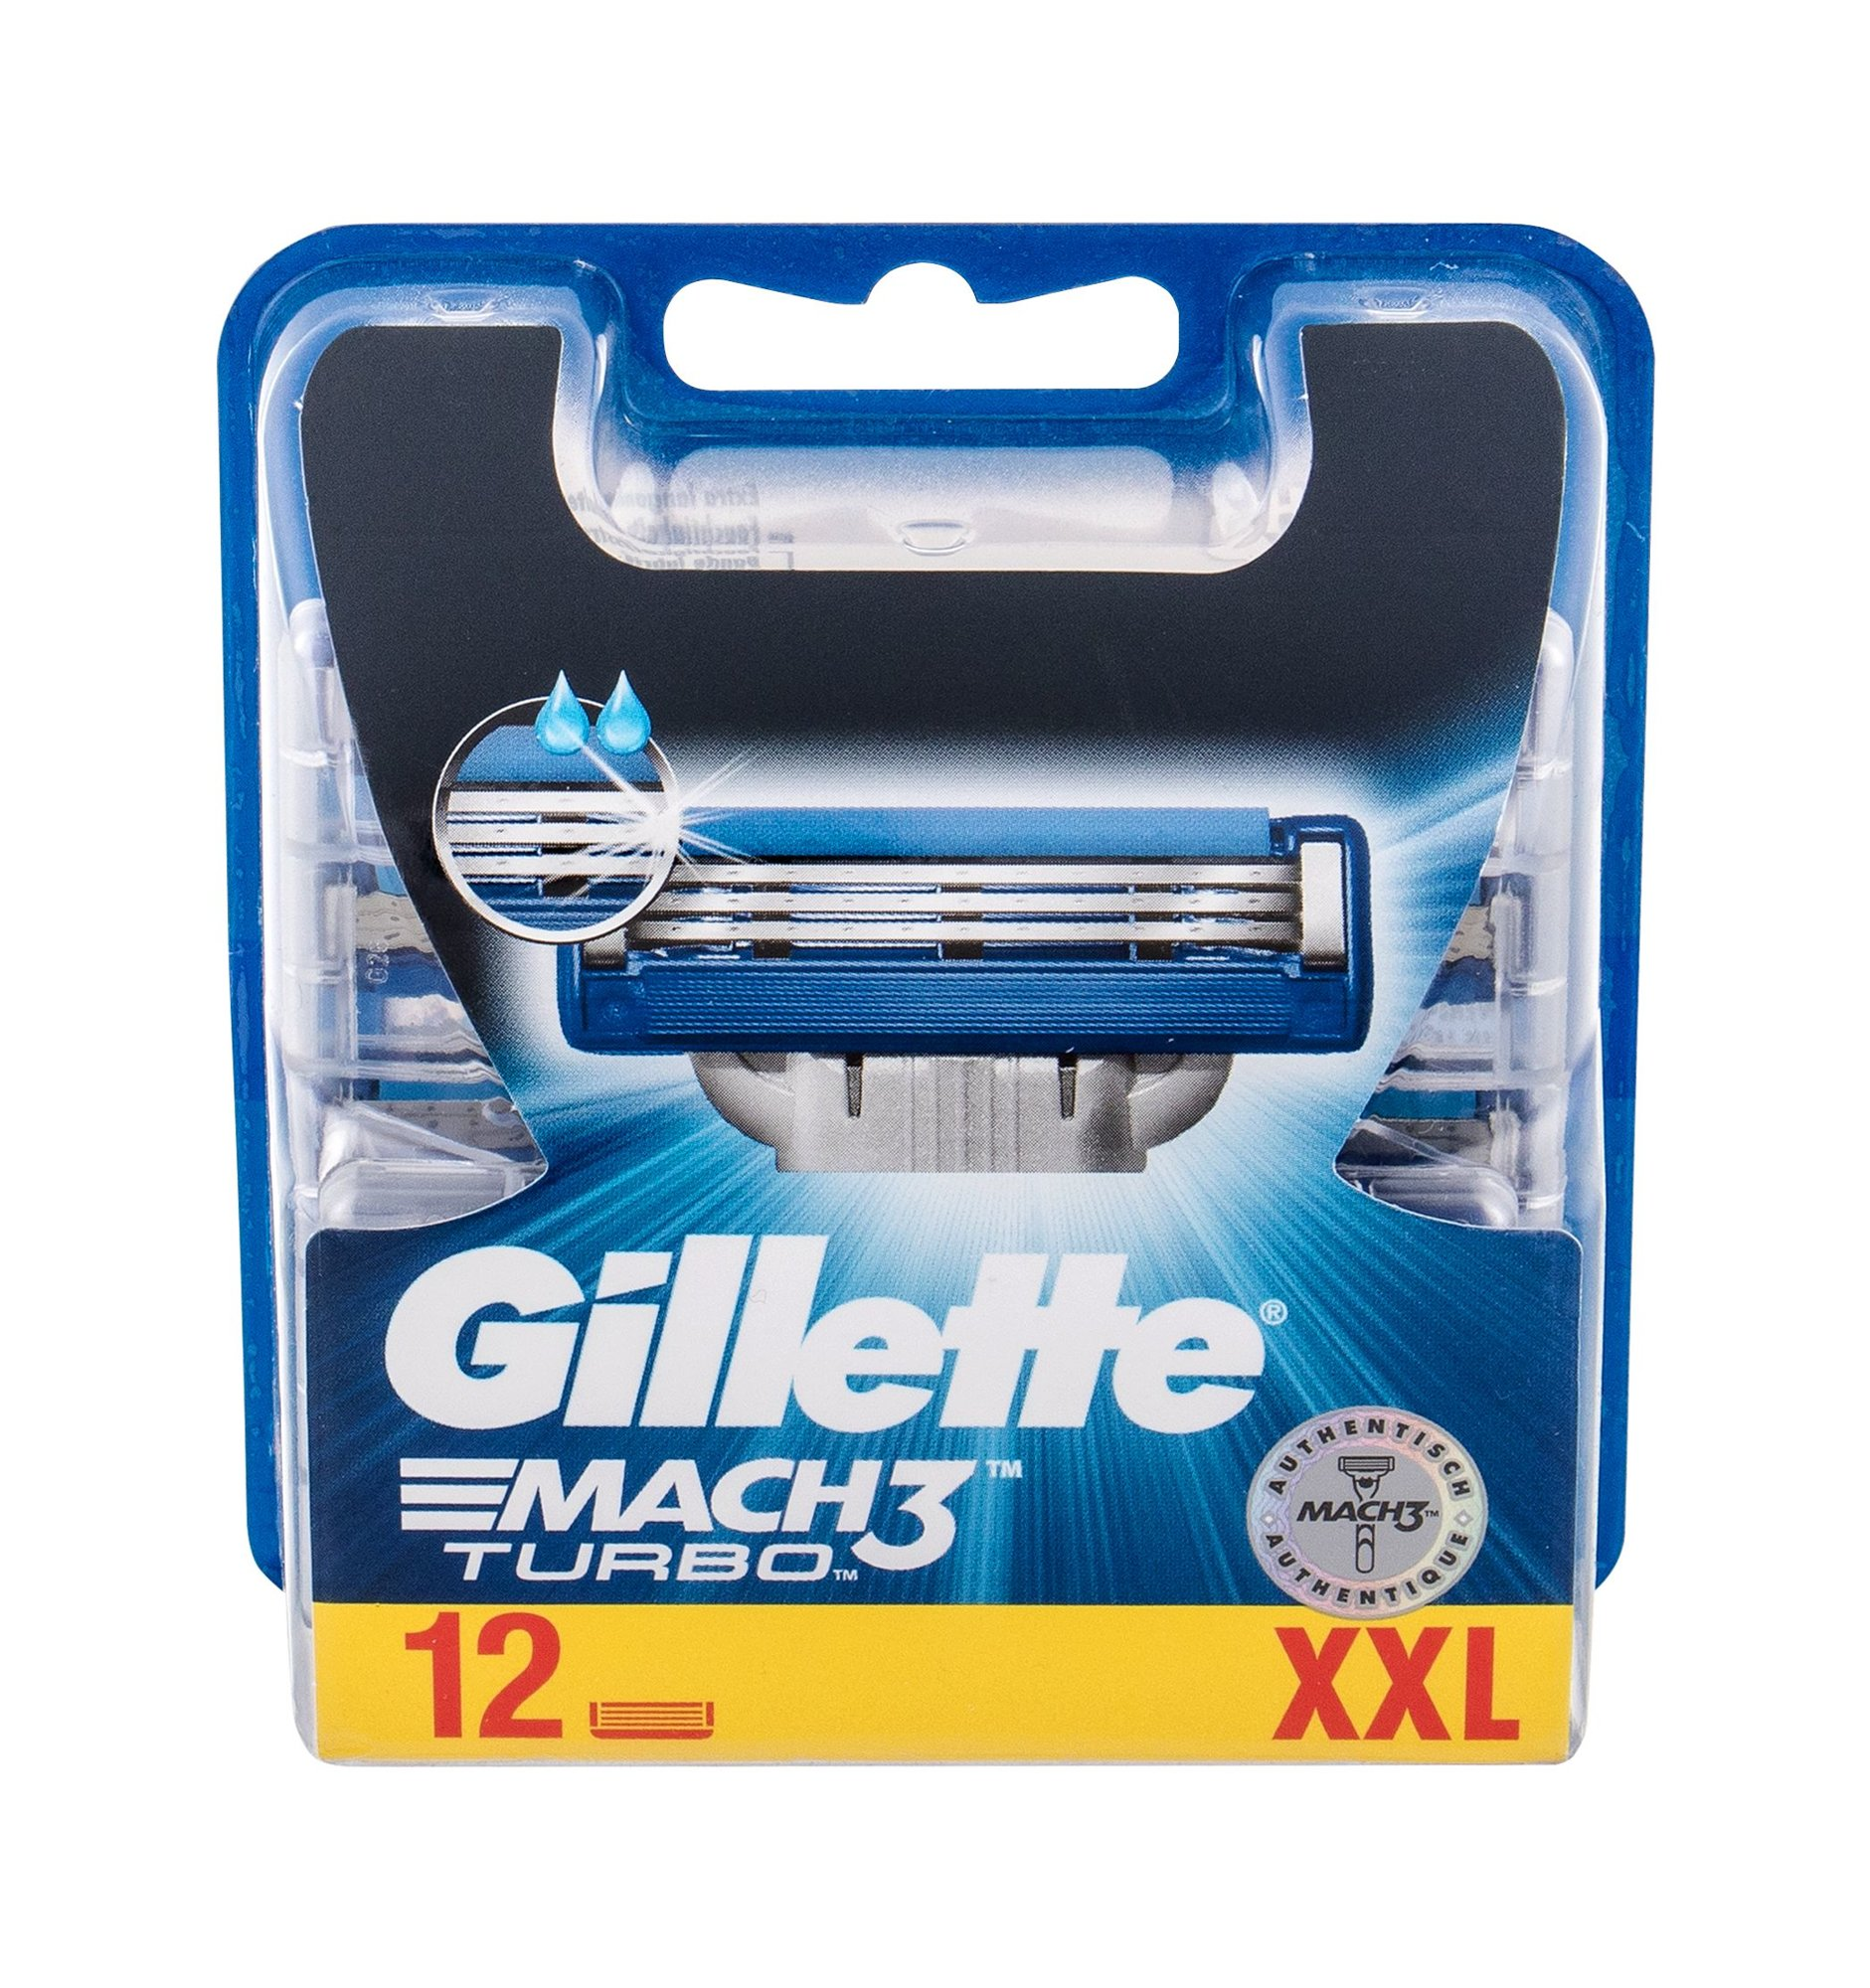 Gillette Mach3 Turbo Replacement blade 12ml